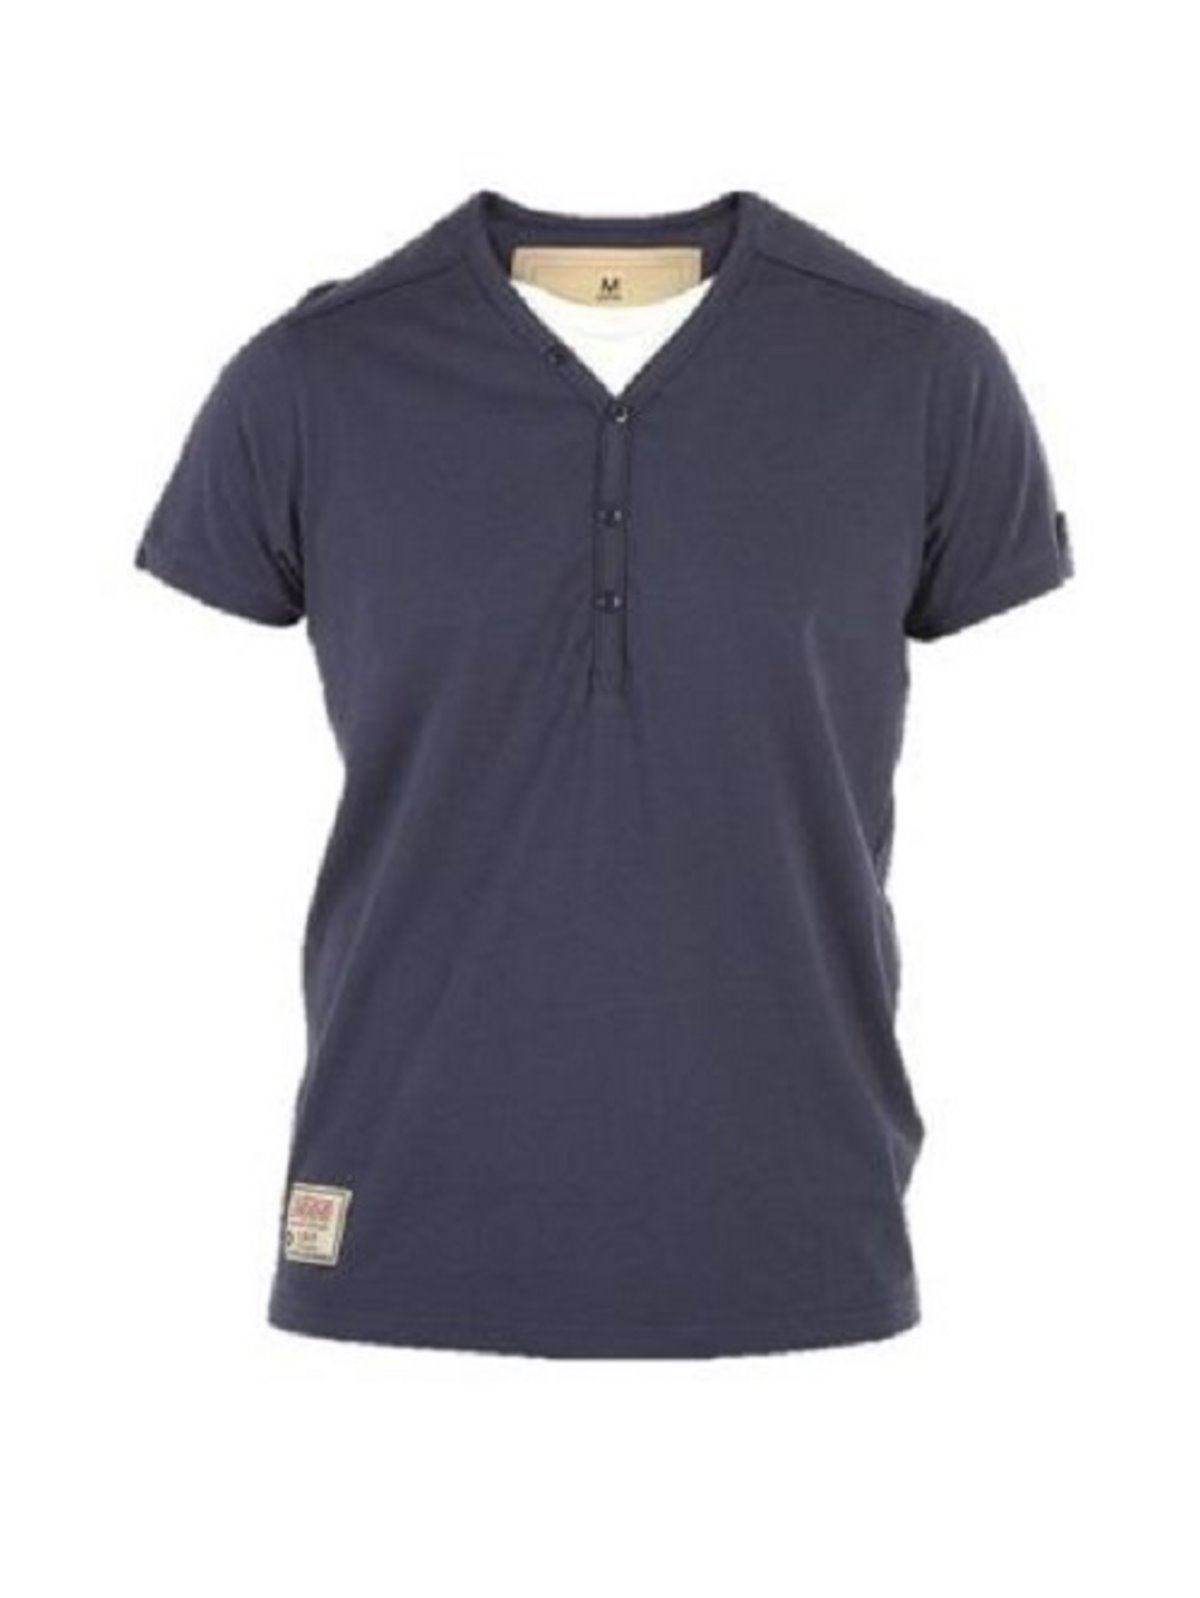 Find great deals on eBay for king size mens clothing. Shop with confidence.